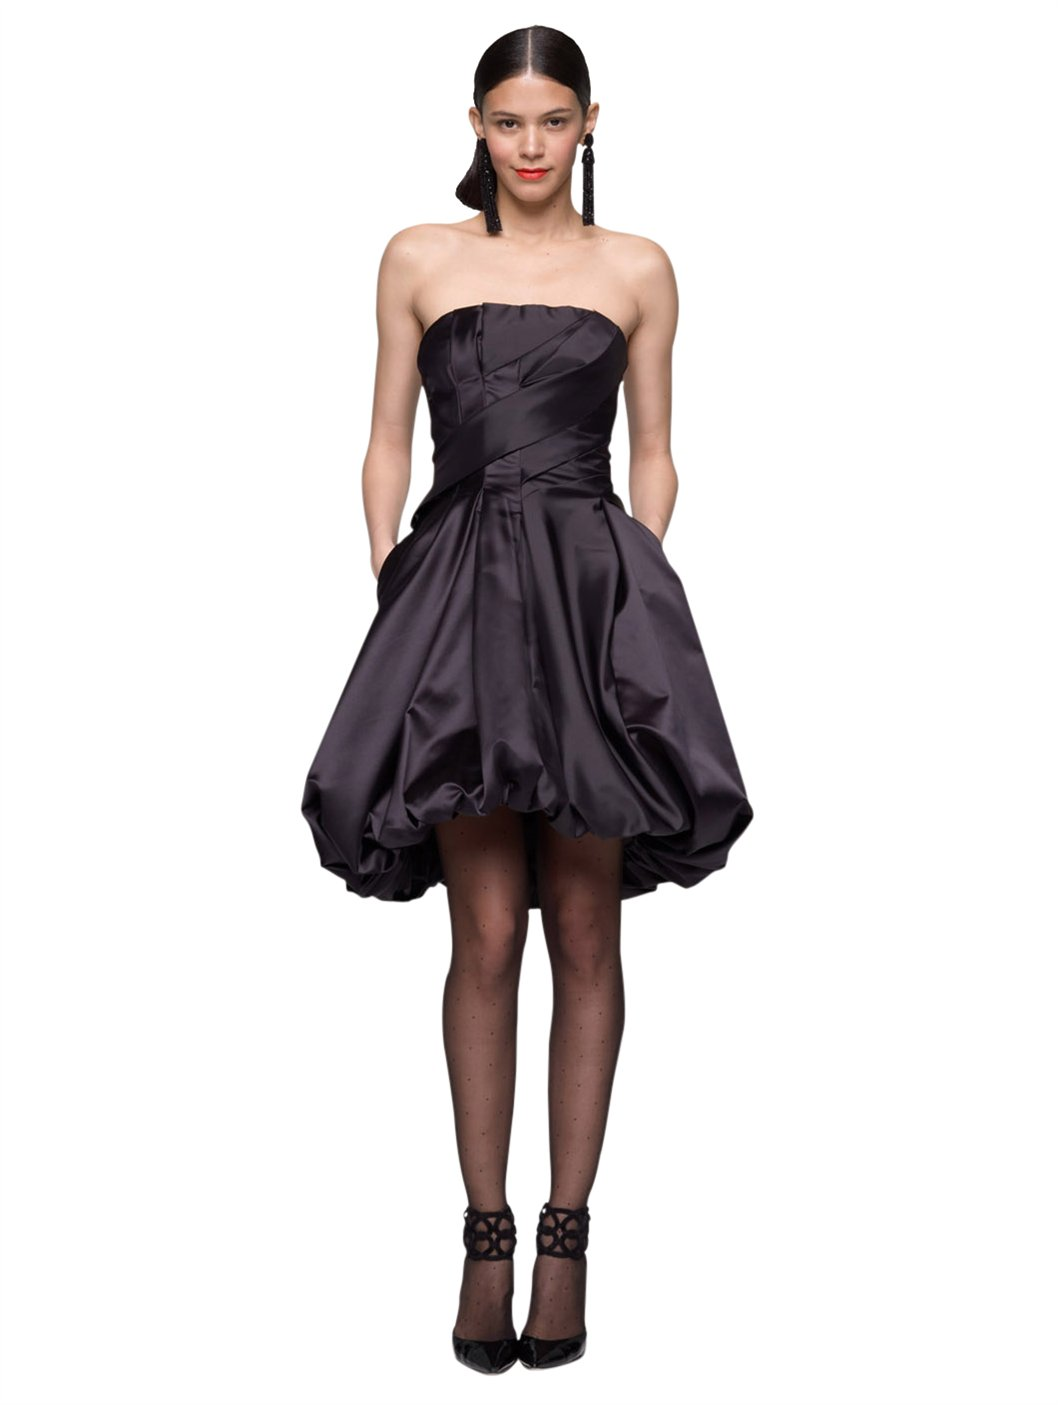 Oscar de la renta Duchess Satin Strapless Bubble Dress in Black | Lyst